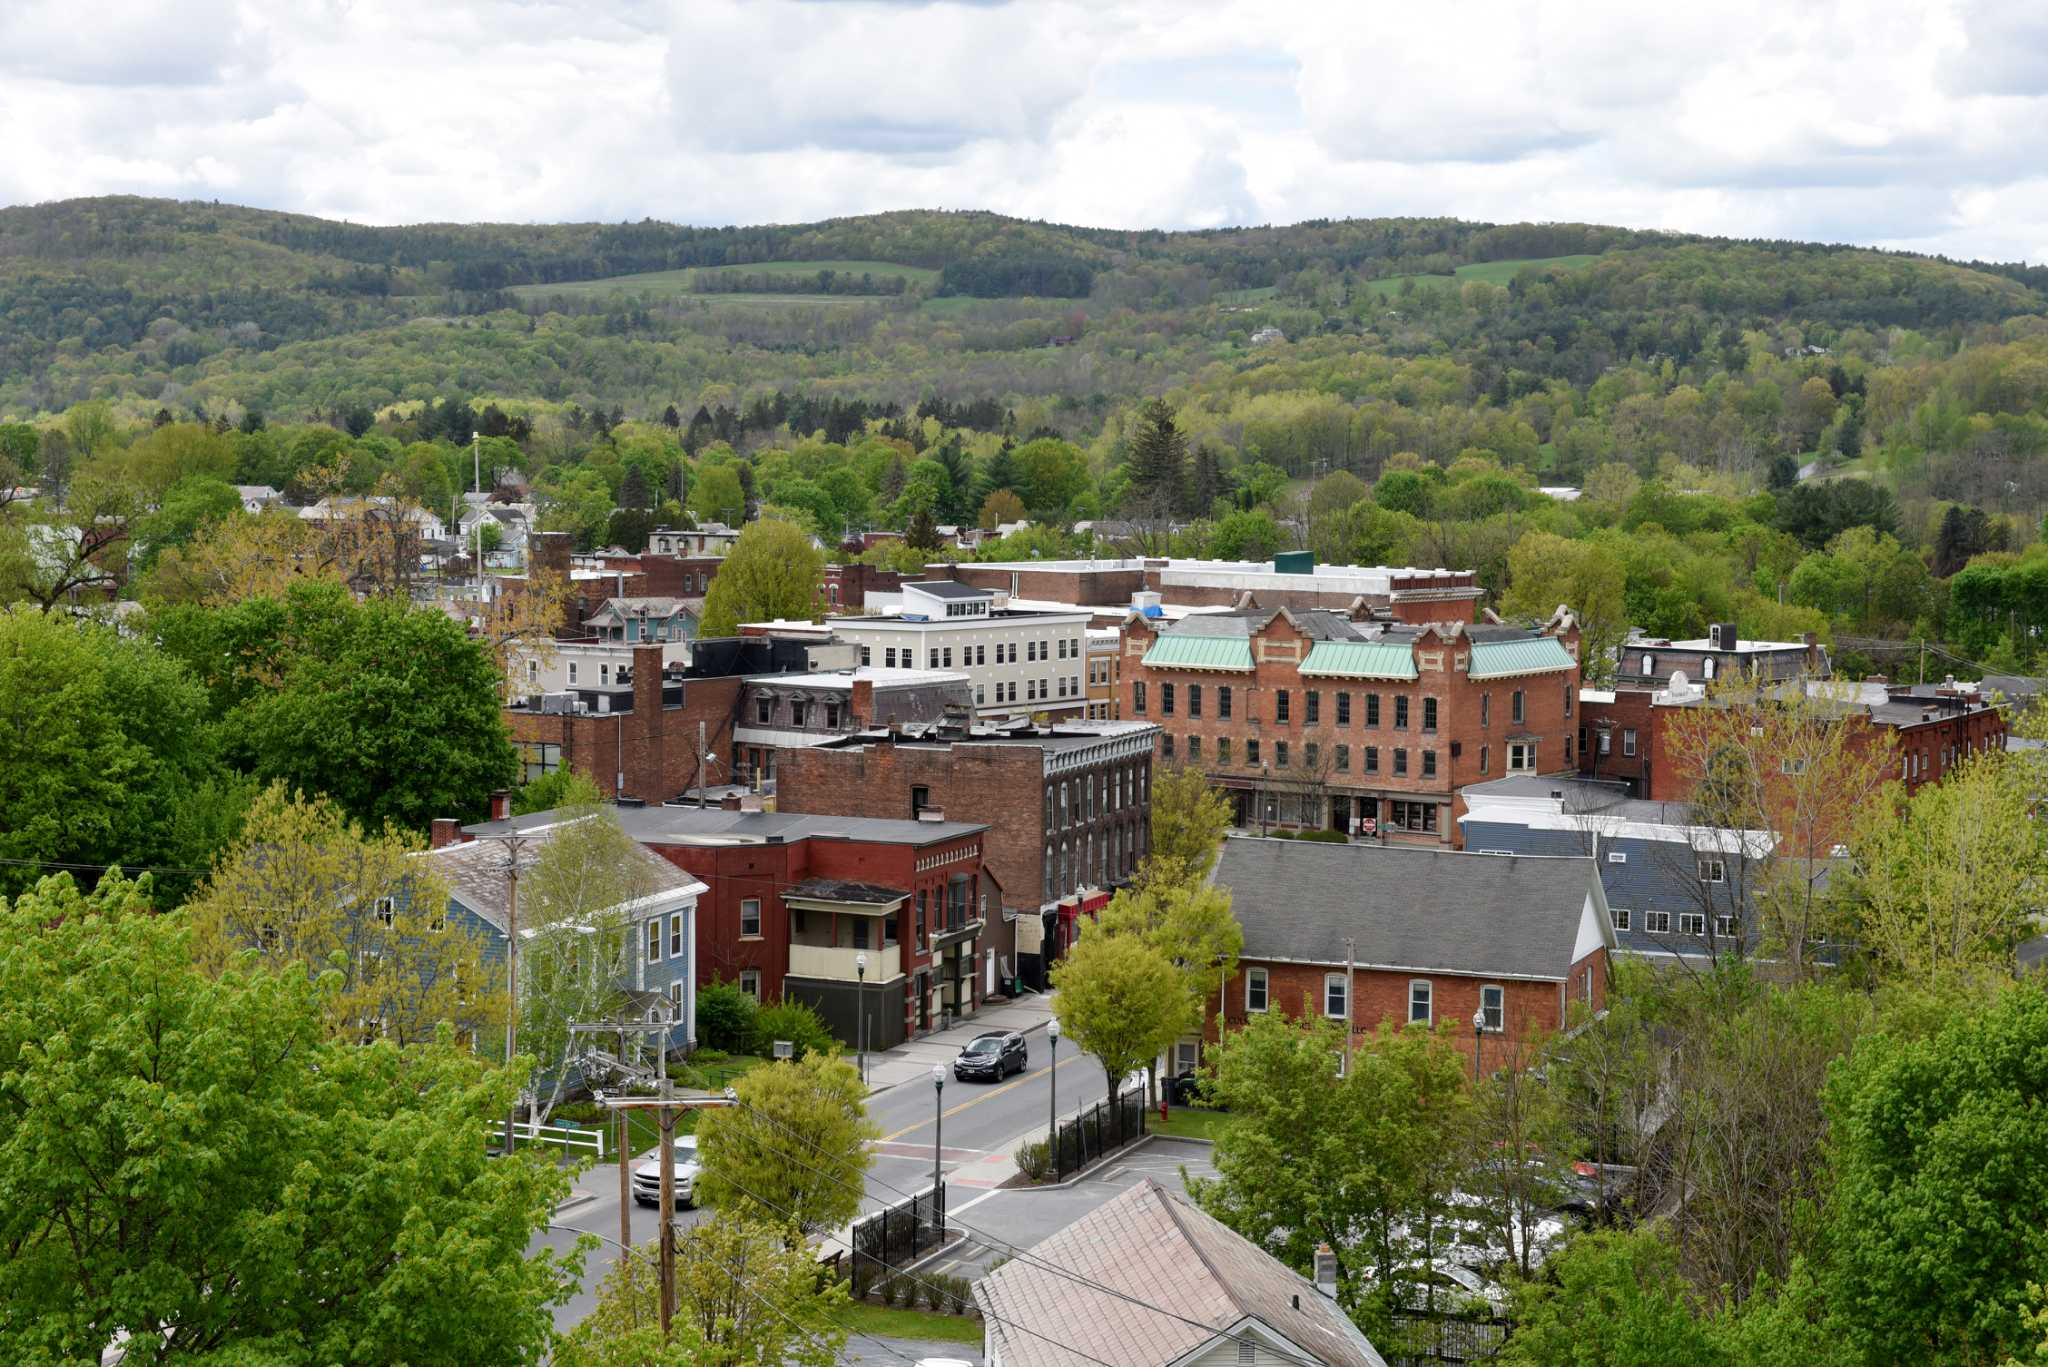 hoosick falls catholic single men The grounds whether you're out for the day with family and friends, or enjoying some alone time, you can enjoy the spectacular rural scenery of hoosick falls, while you play.